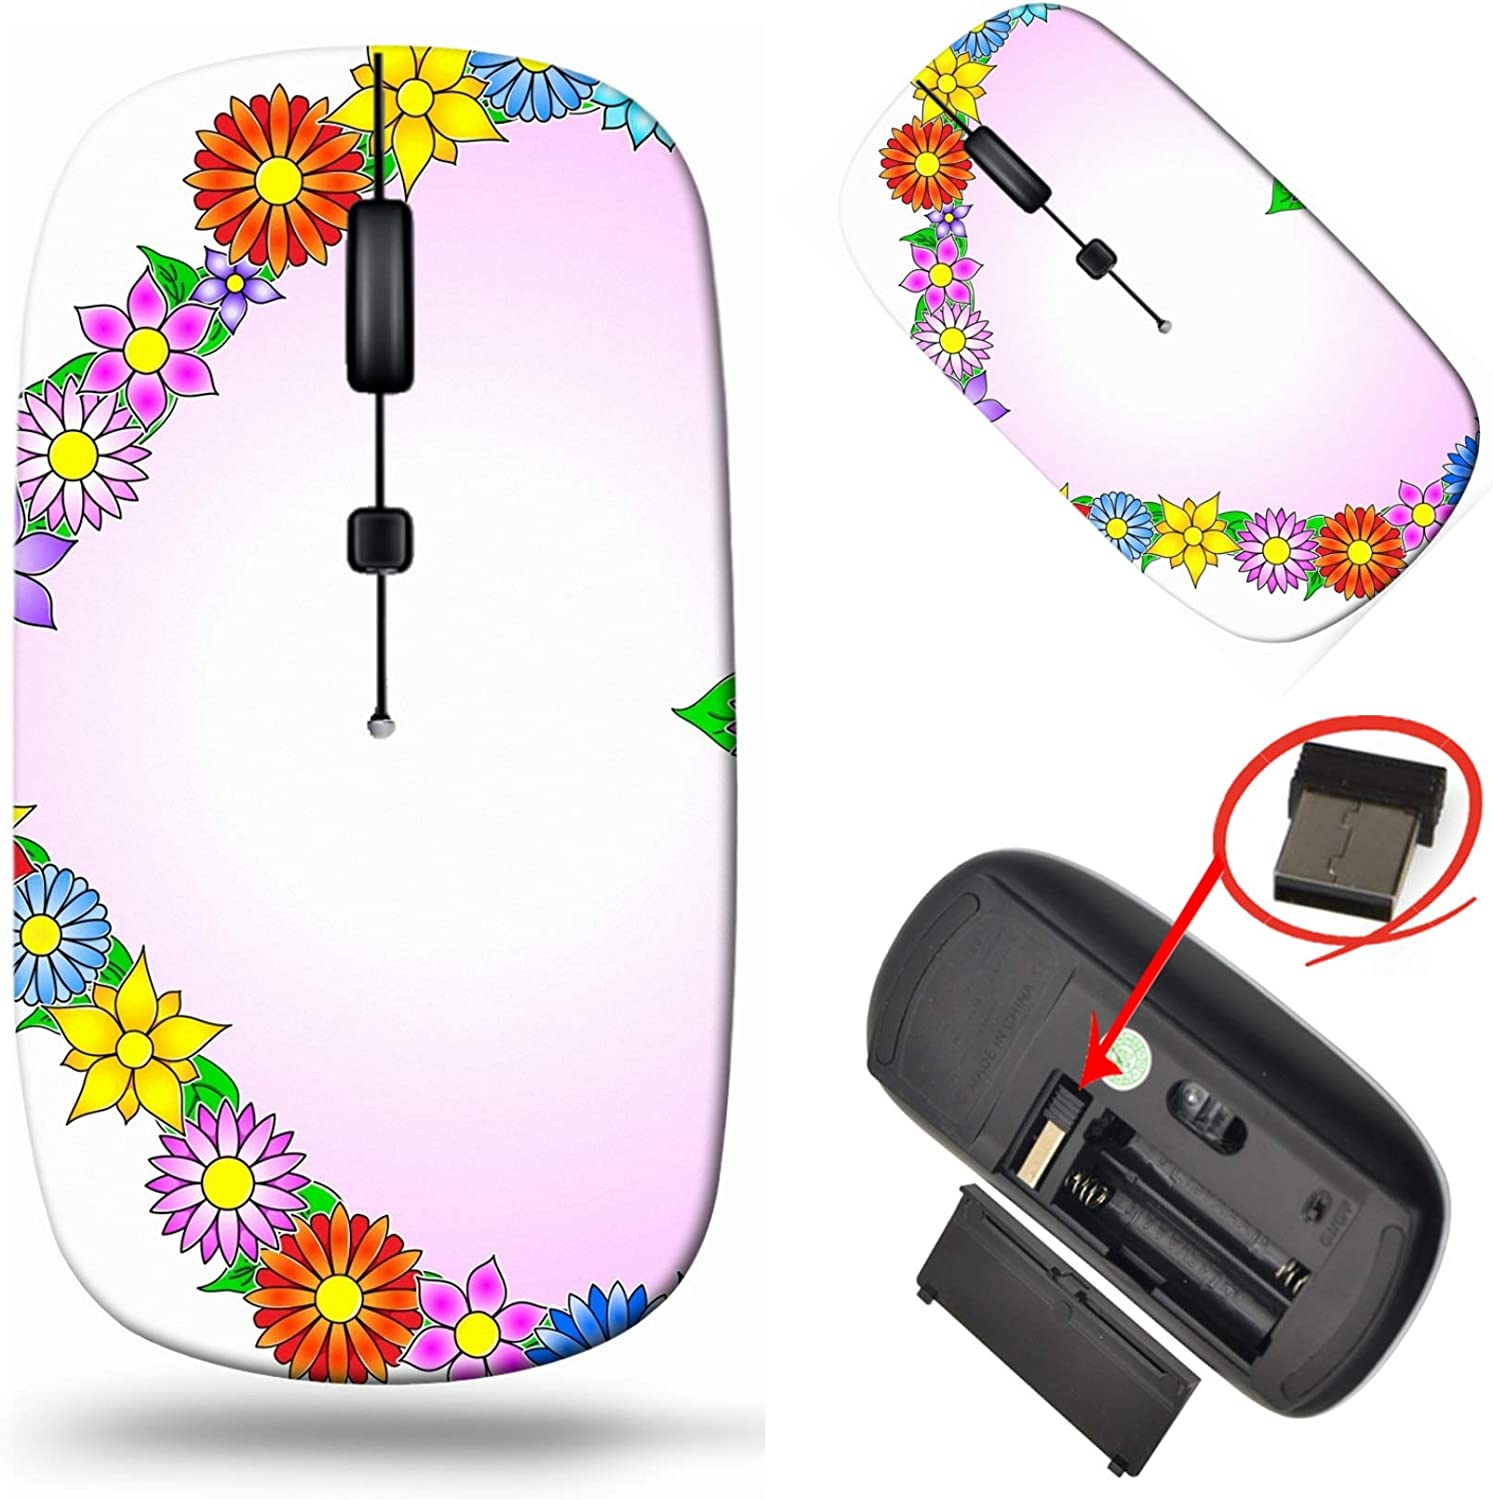 MSD Computer Wireless Mouse Laptop 2.4G Denver Mall USB Tra